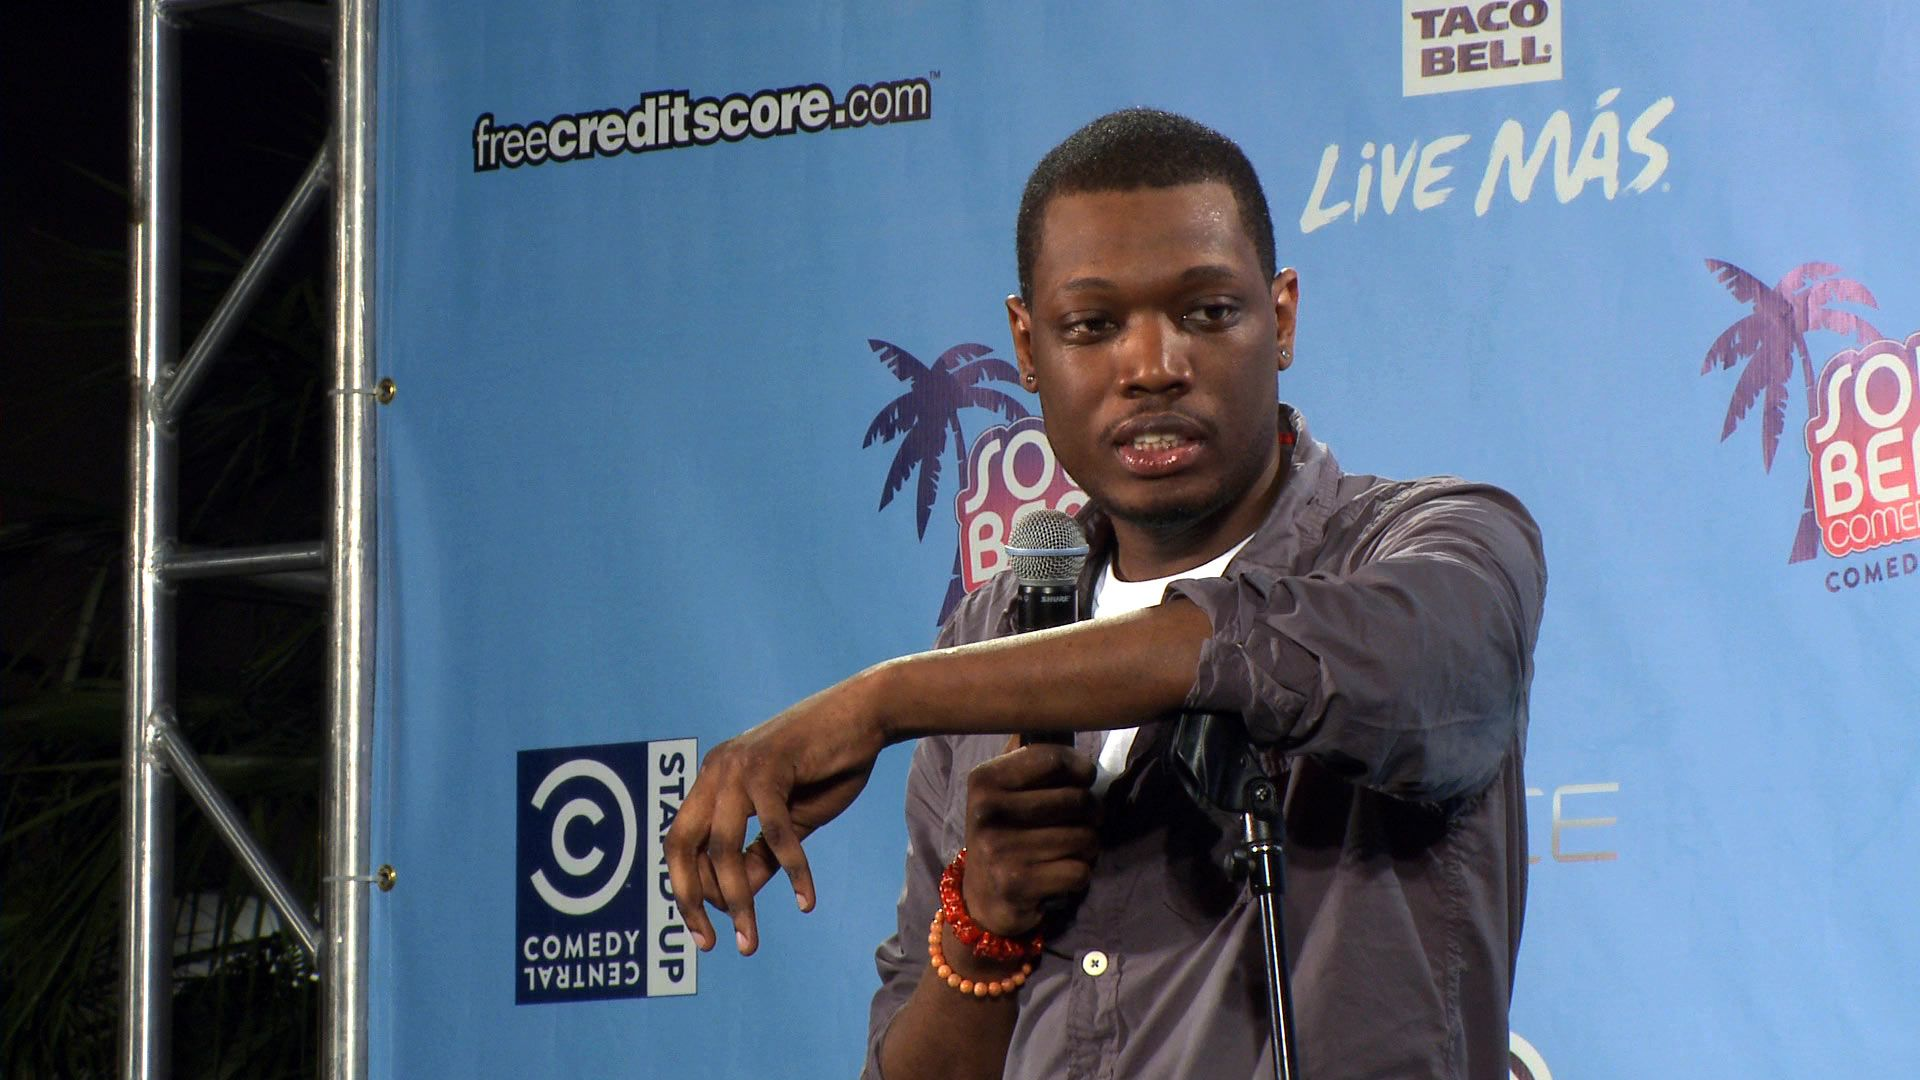 South Beach Comedy Festival: Michael Che - Eating Chicken